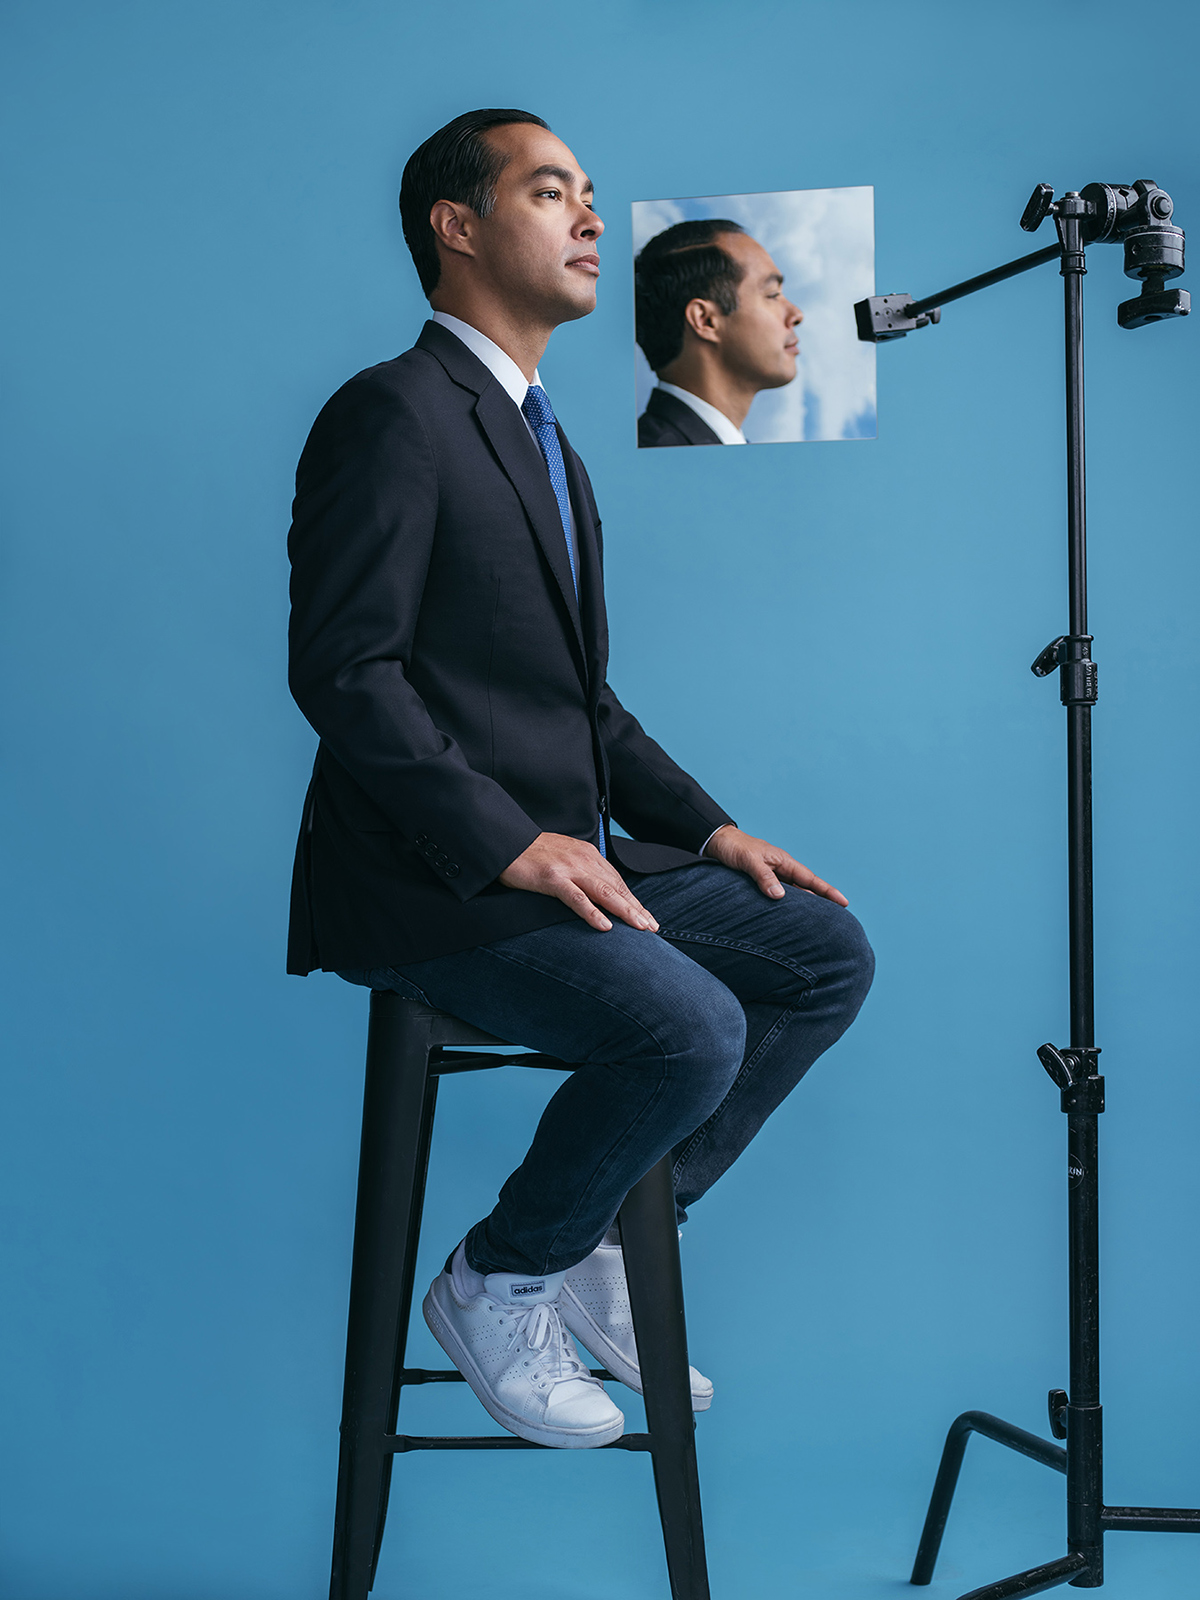 Presidential Candidate, Sec. Julian Castro, photographed in San Antonio, TX by portrait photographer Josh Huskin